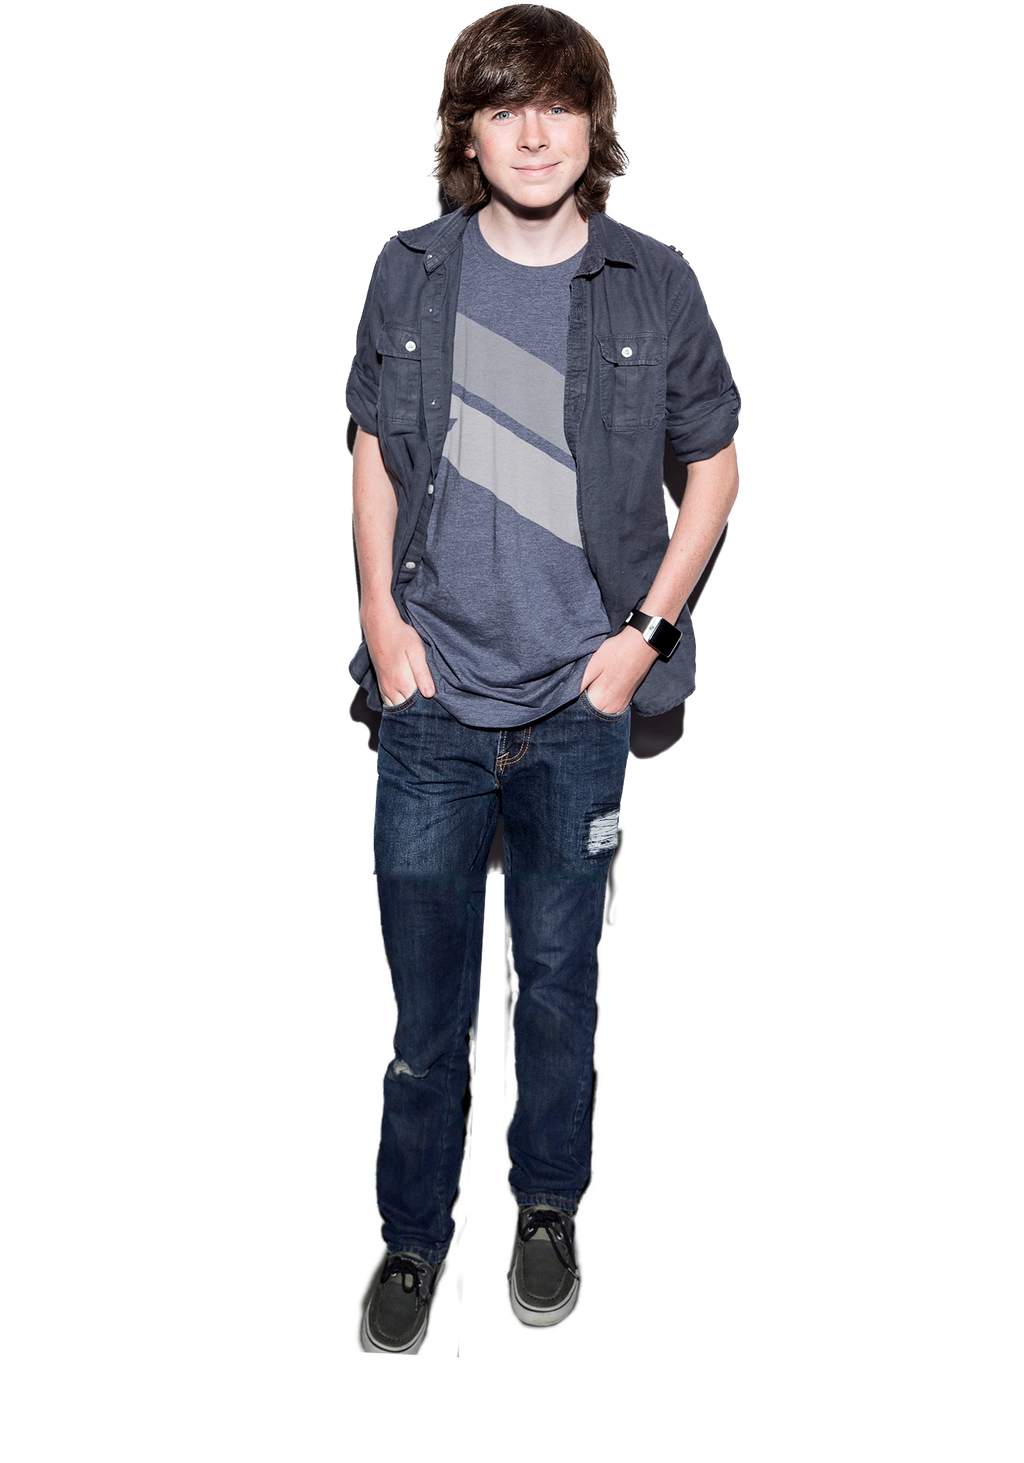 Chandler Riggs 2014 5cc By Damianb88 On Deviantart